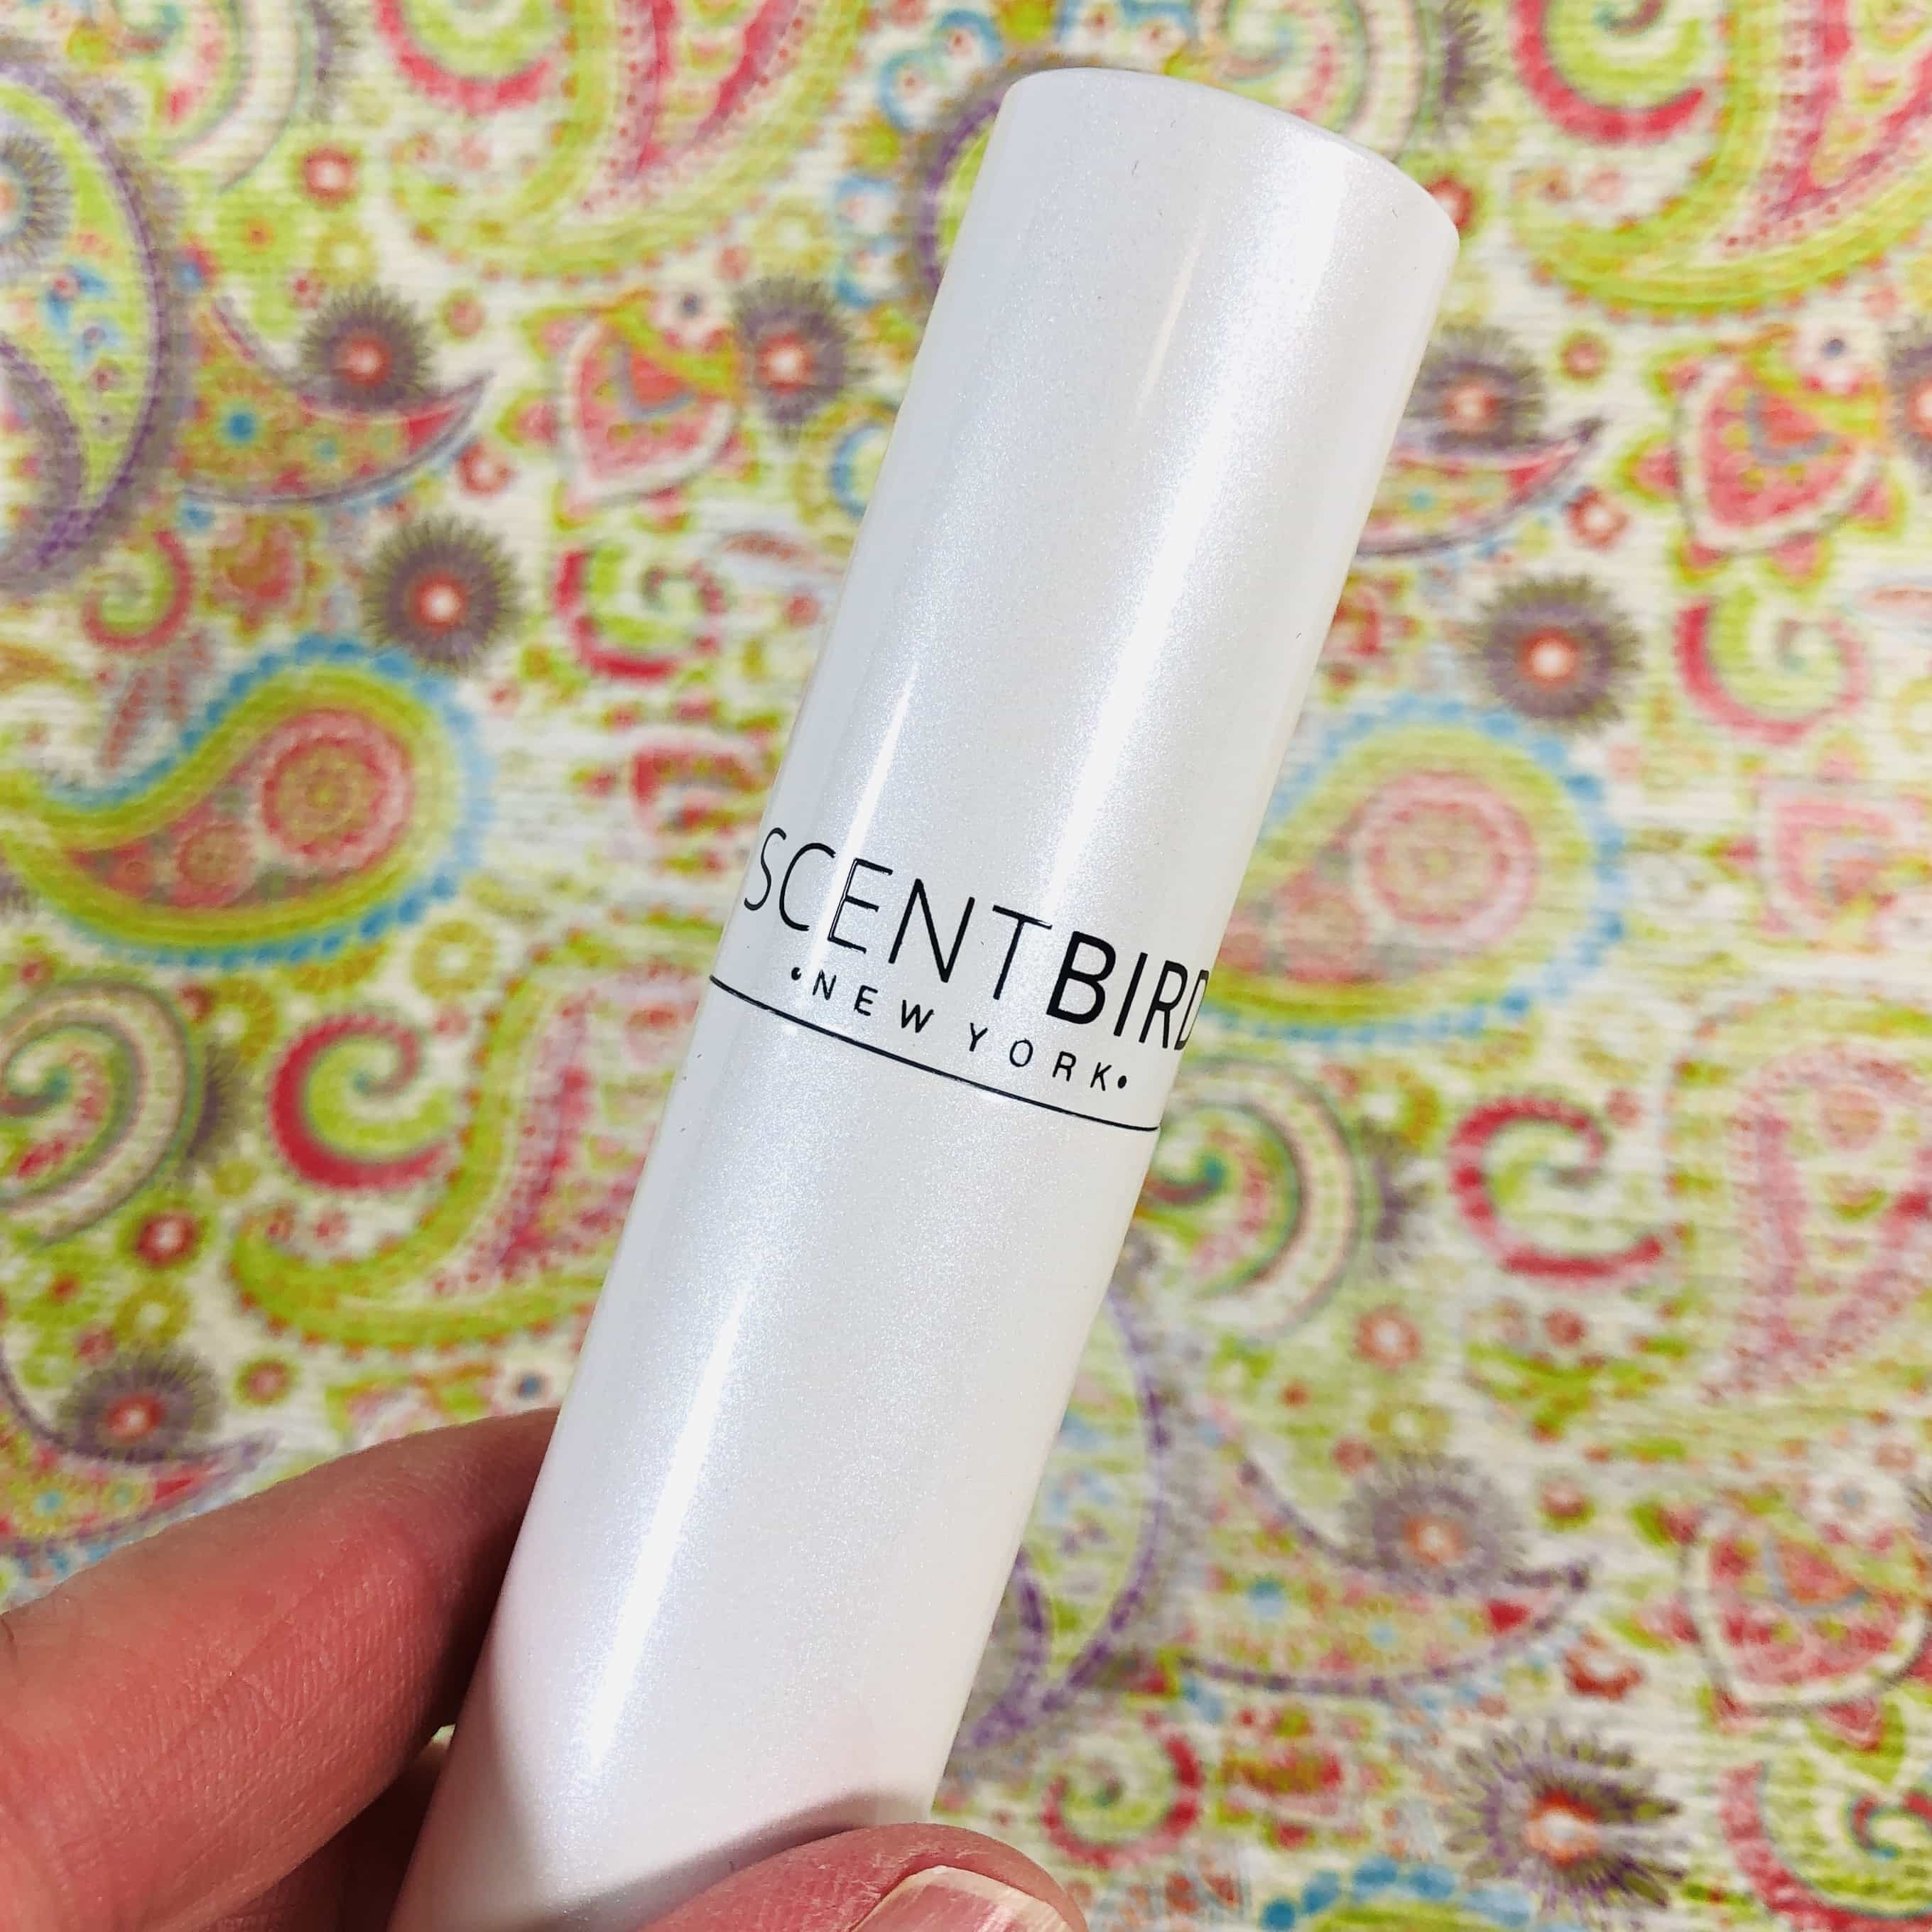 Scentbird April 2019 Fragrance Subscription Review & Coupon